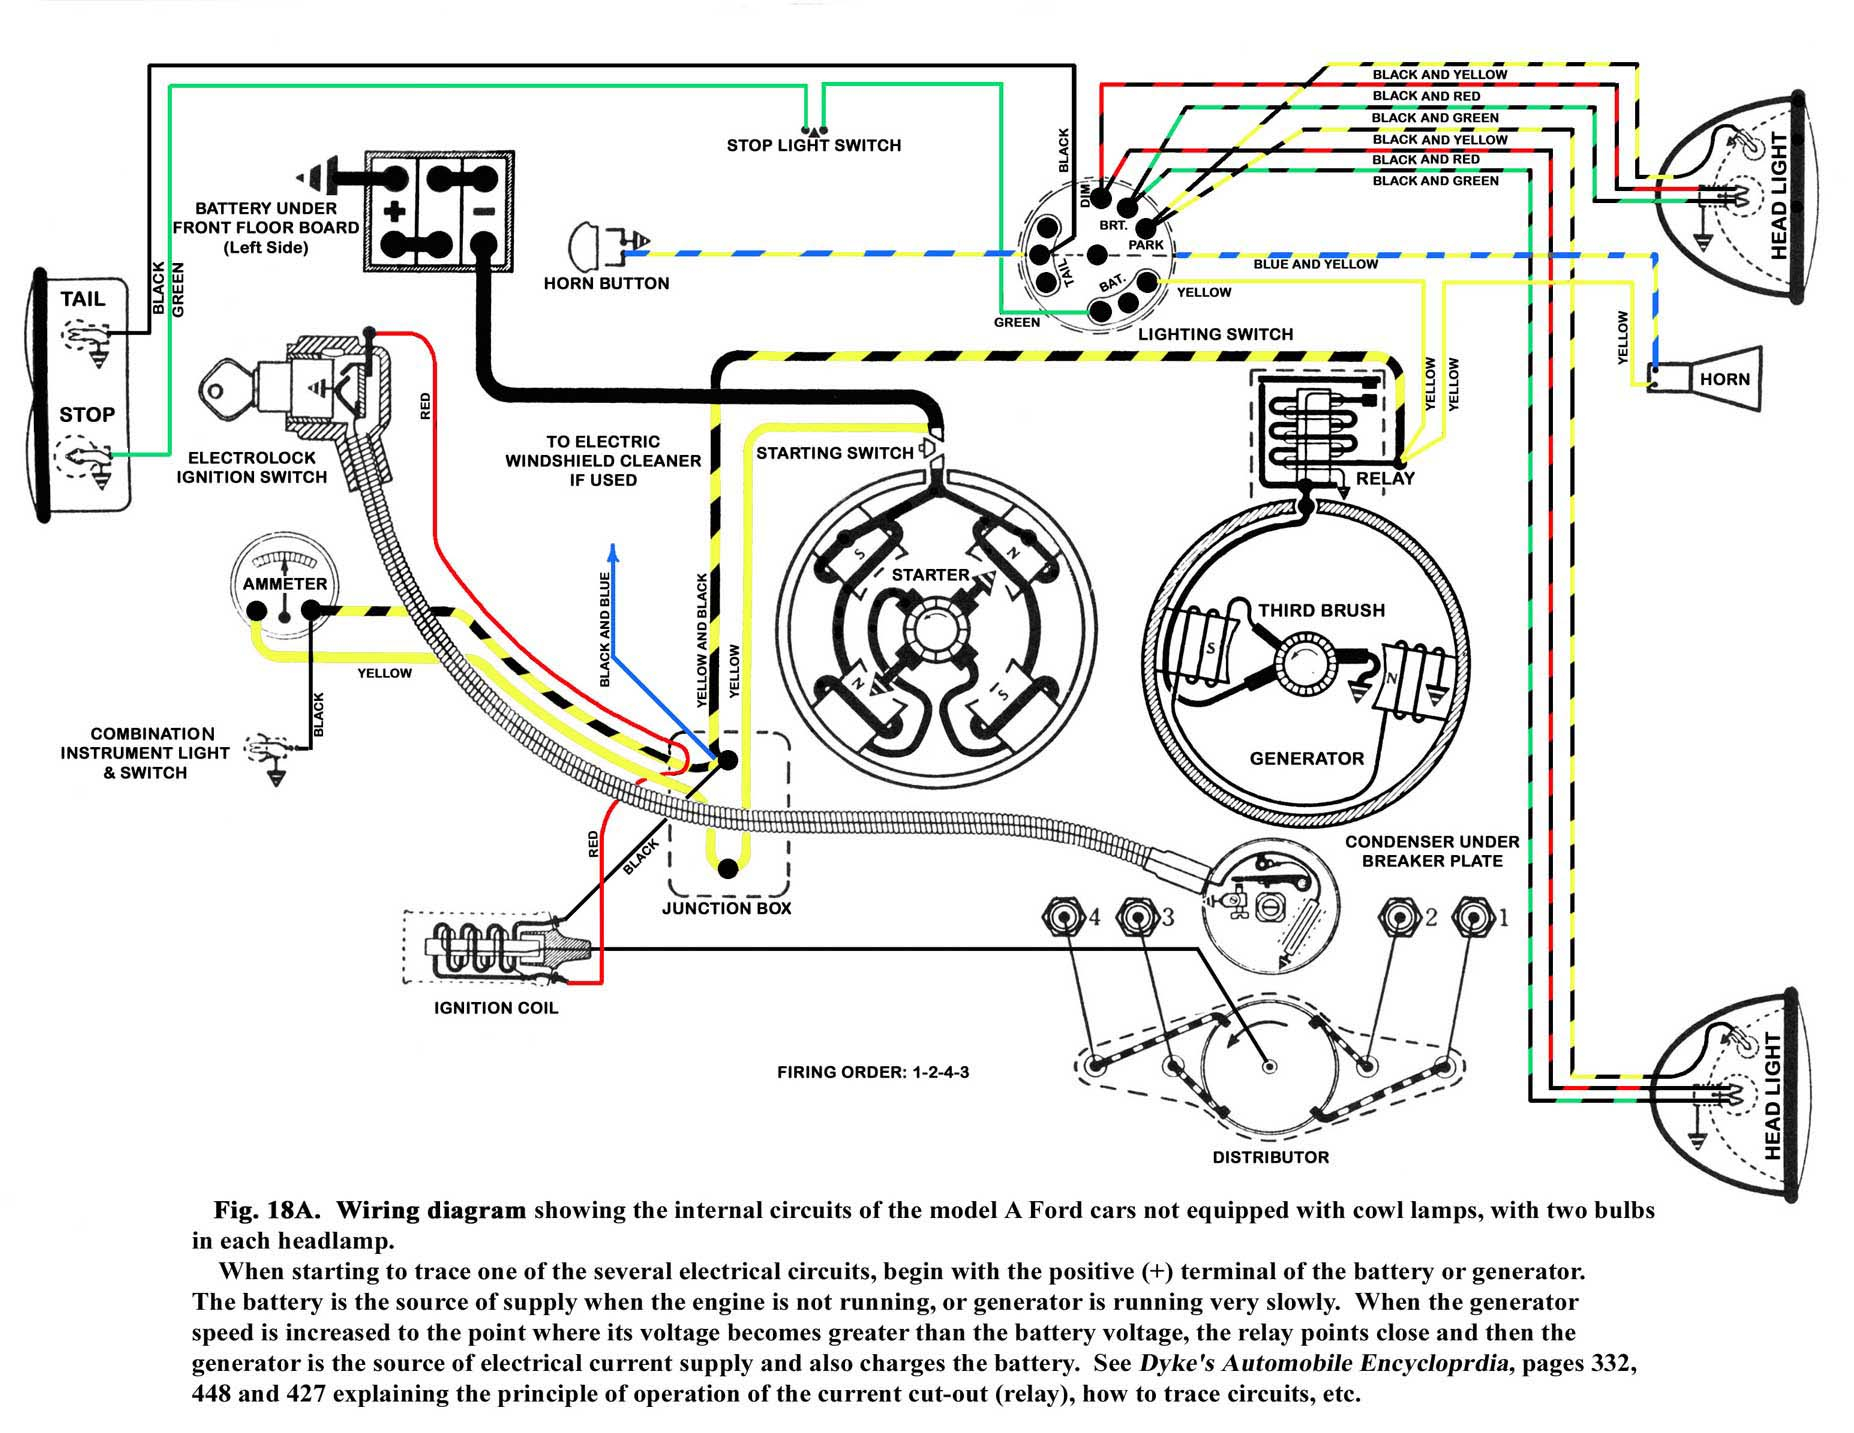 Generator Voltage Regulator Wiring Diagram Harley | Wiring Diagram - Harley Davidson Voltage Regulator Wiring Diagram